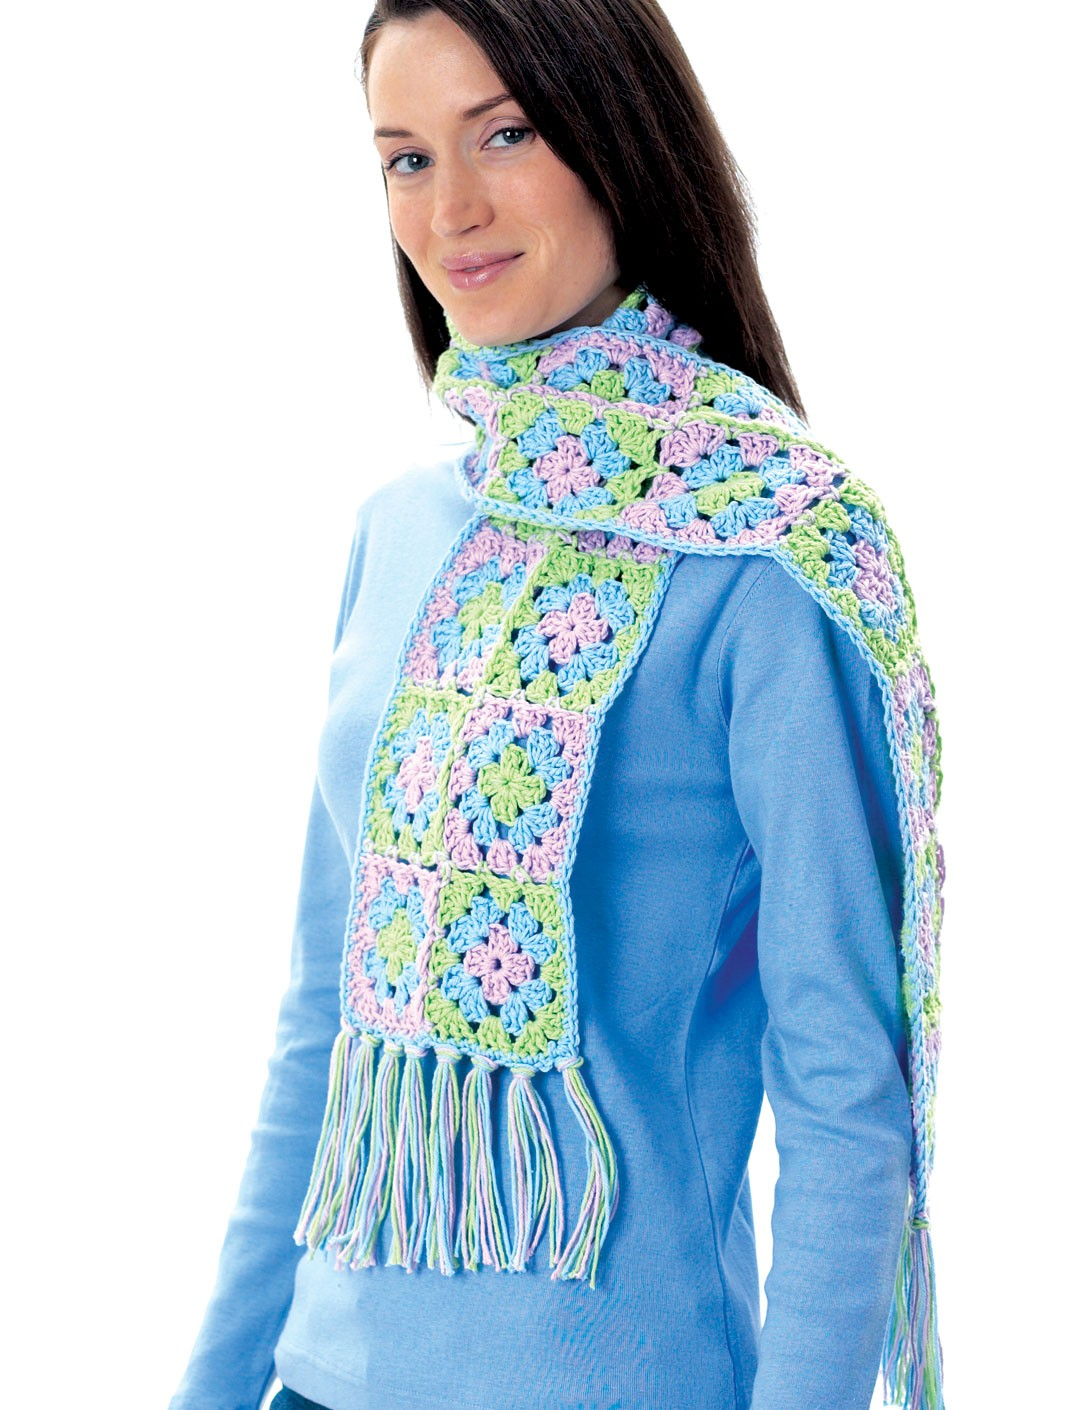 Granny Square Scarf - Patterns Yarnspirations